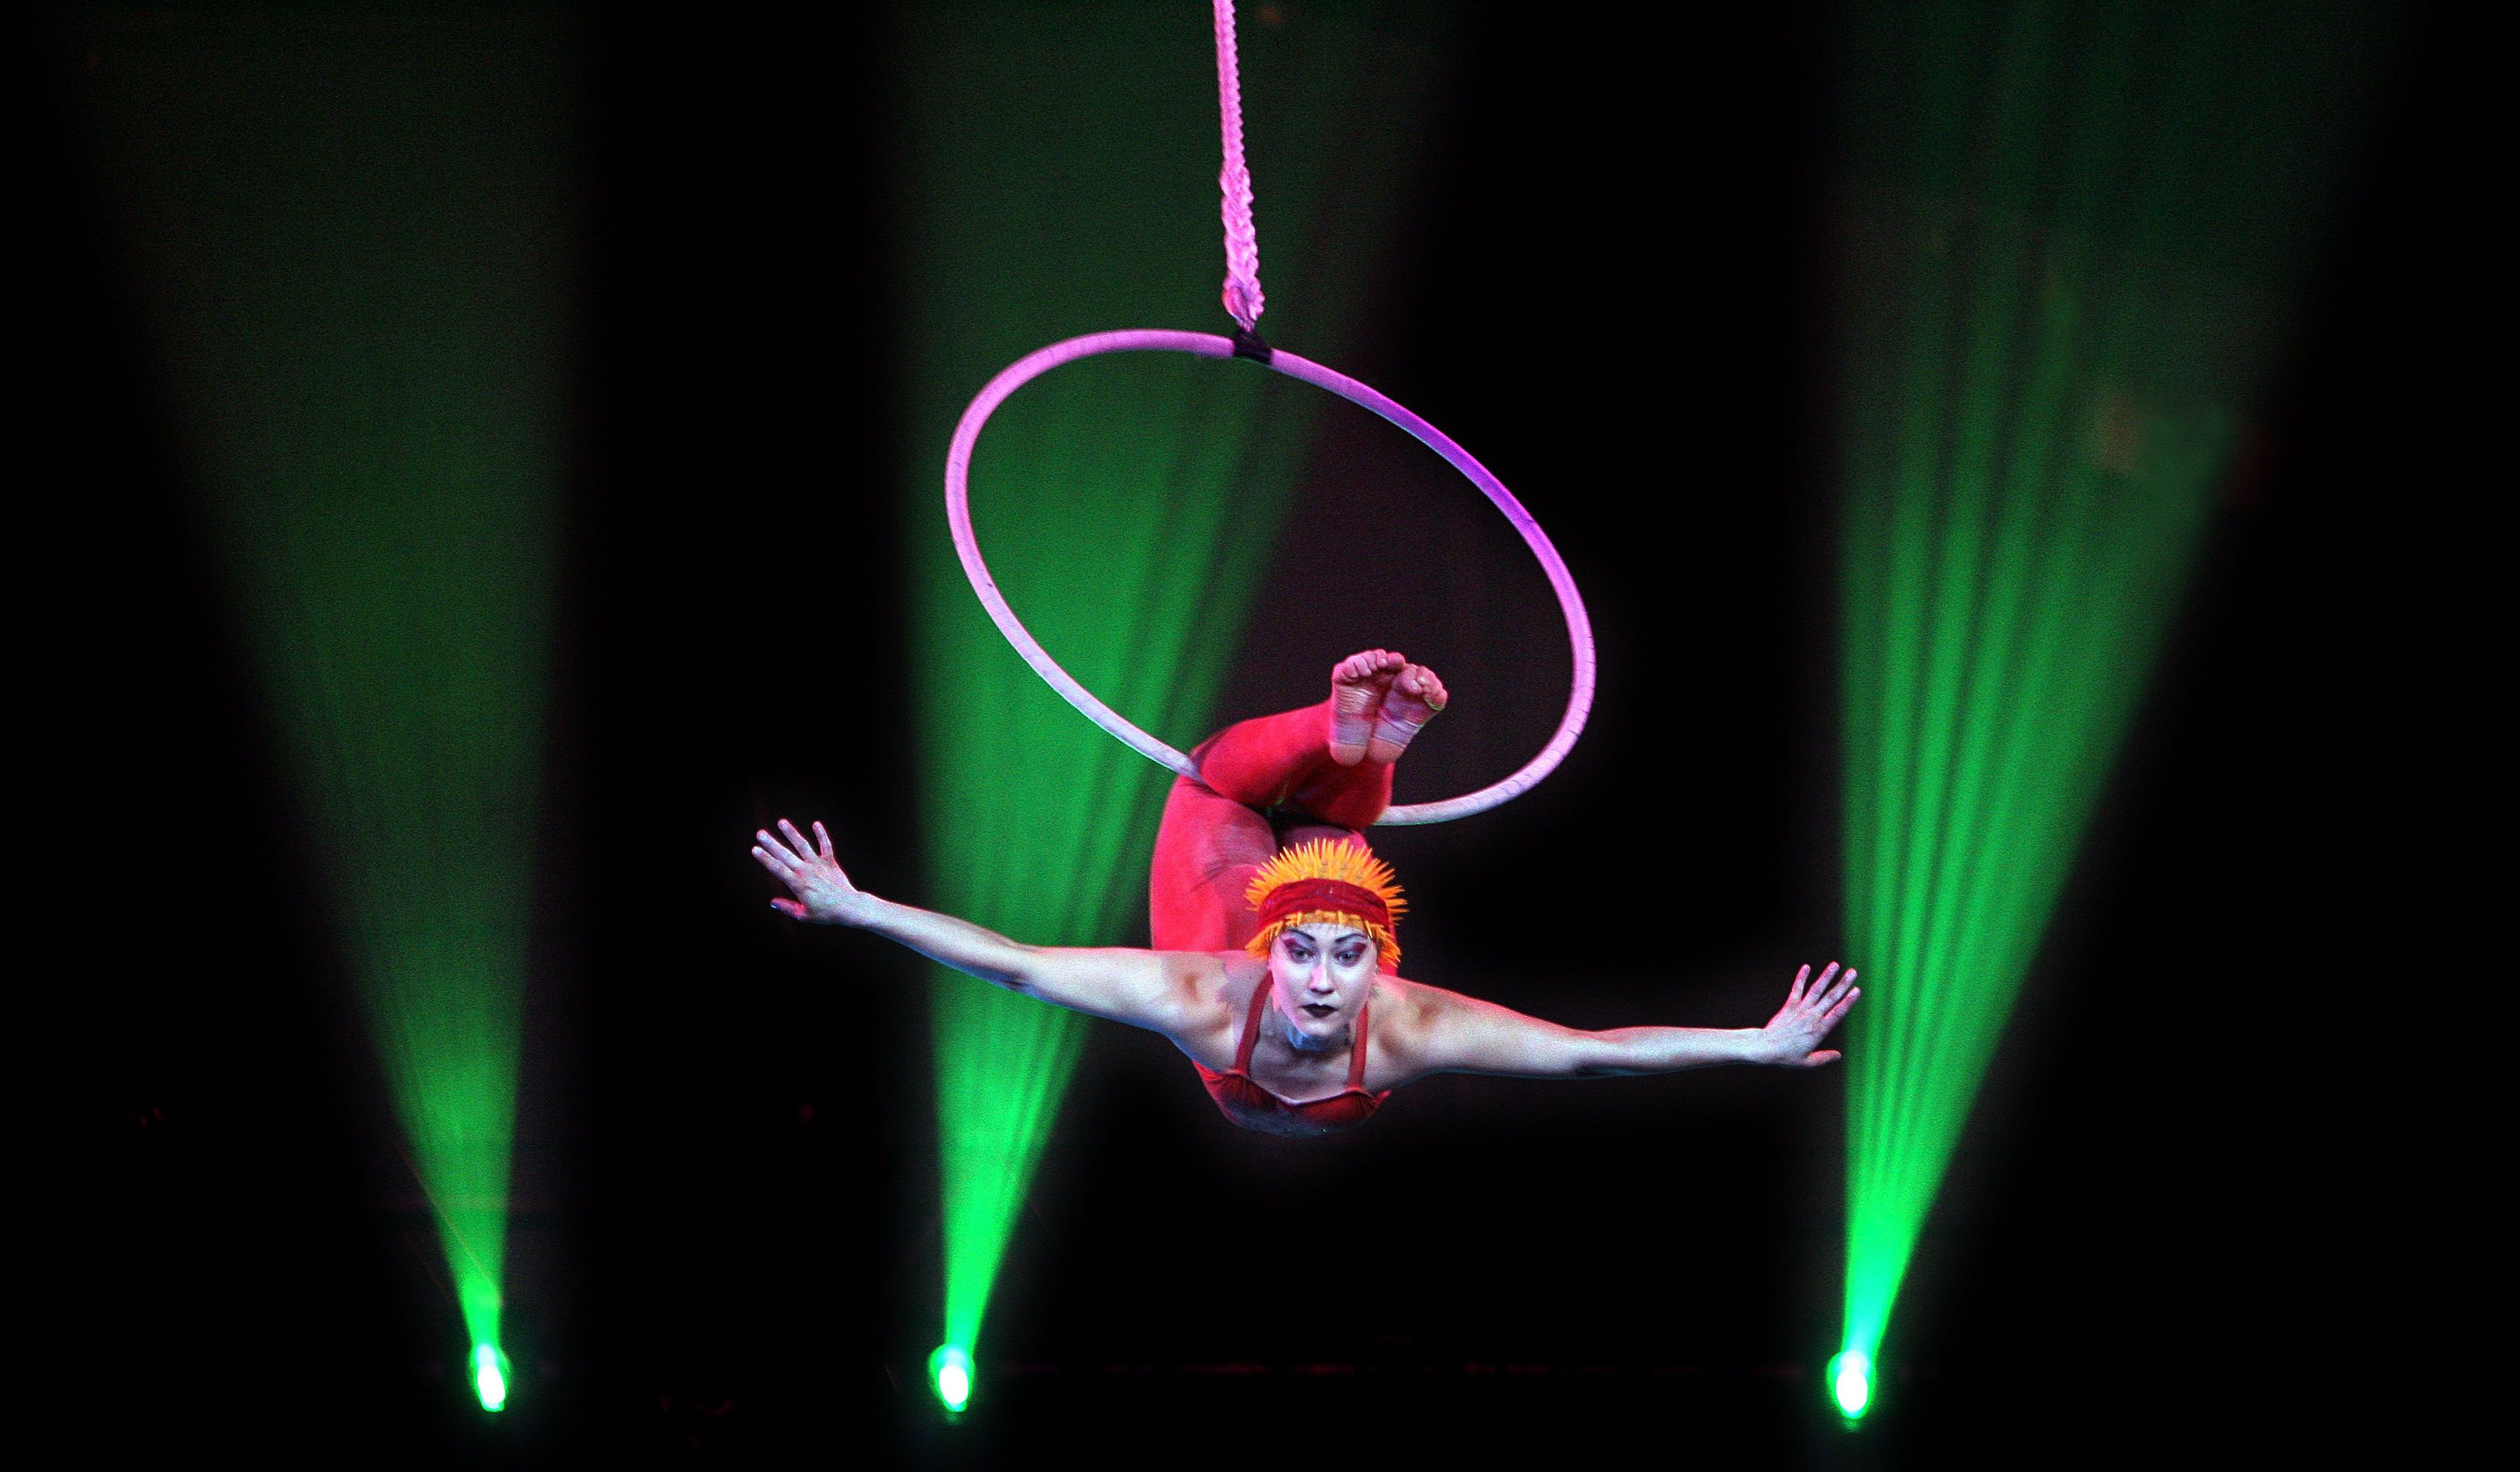 The great mystical circus review